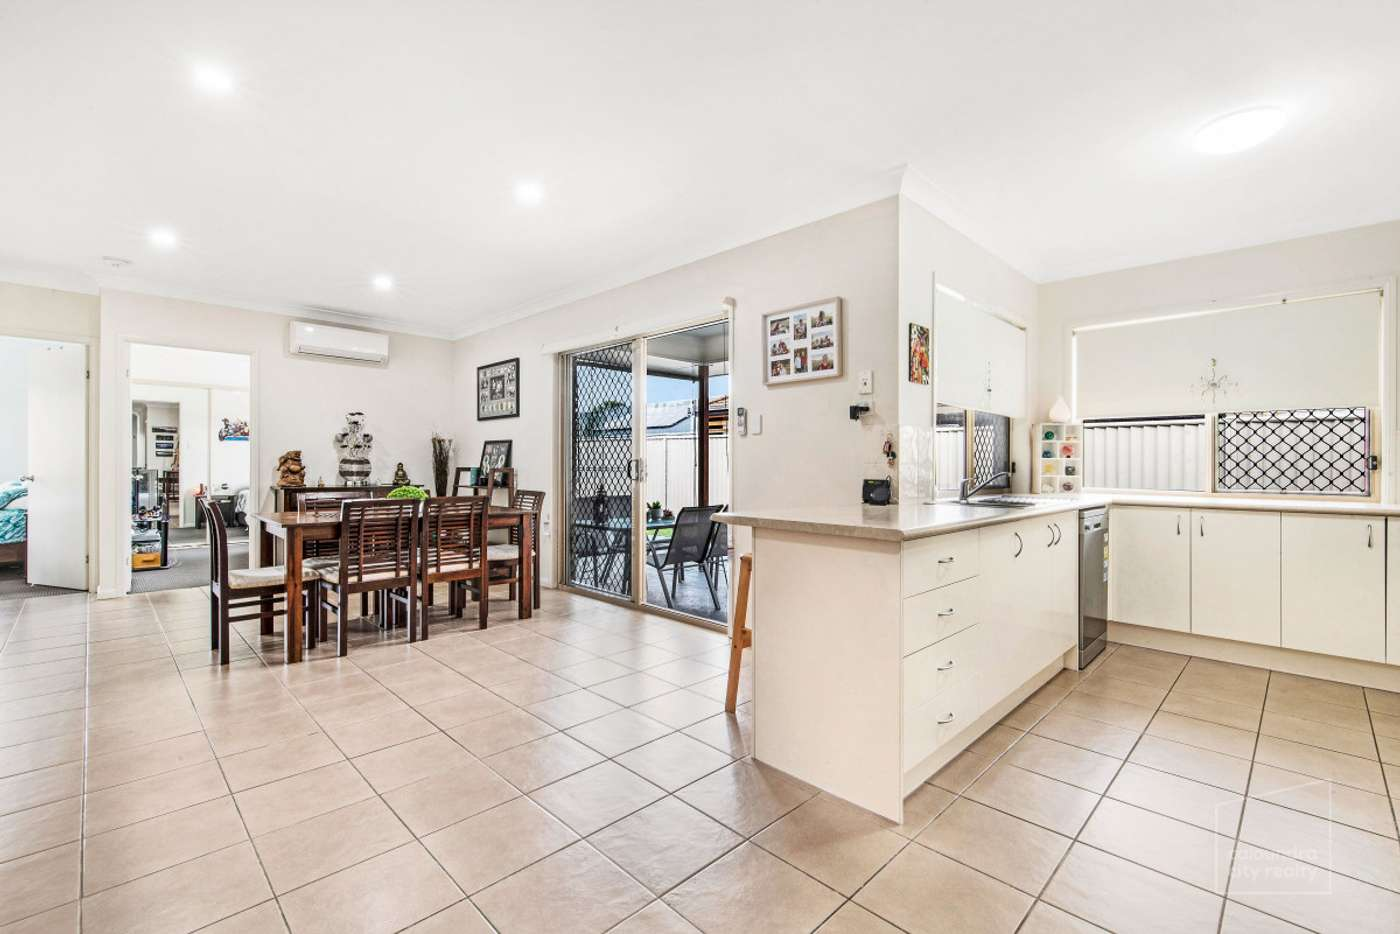 Main view of Homely house listing, 15 Gipps Street, Caloundra West QLD 4551